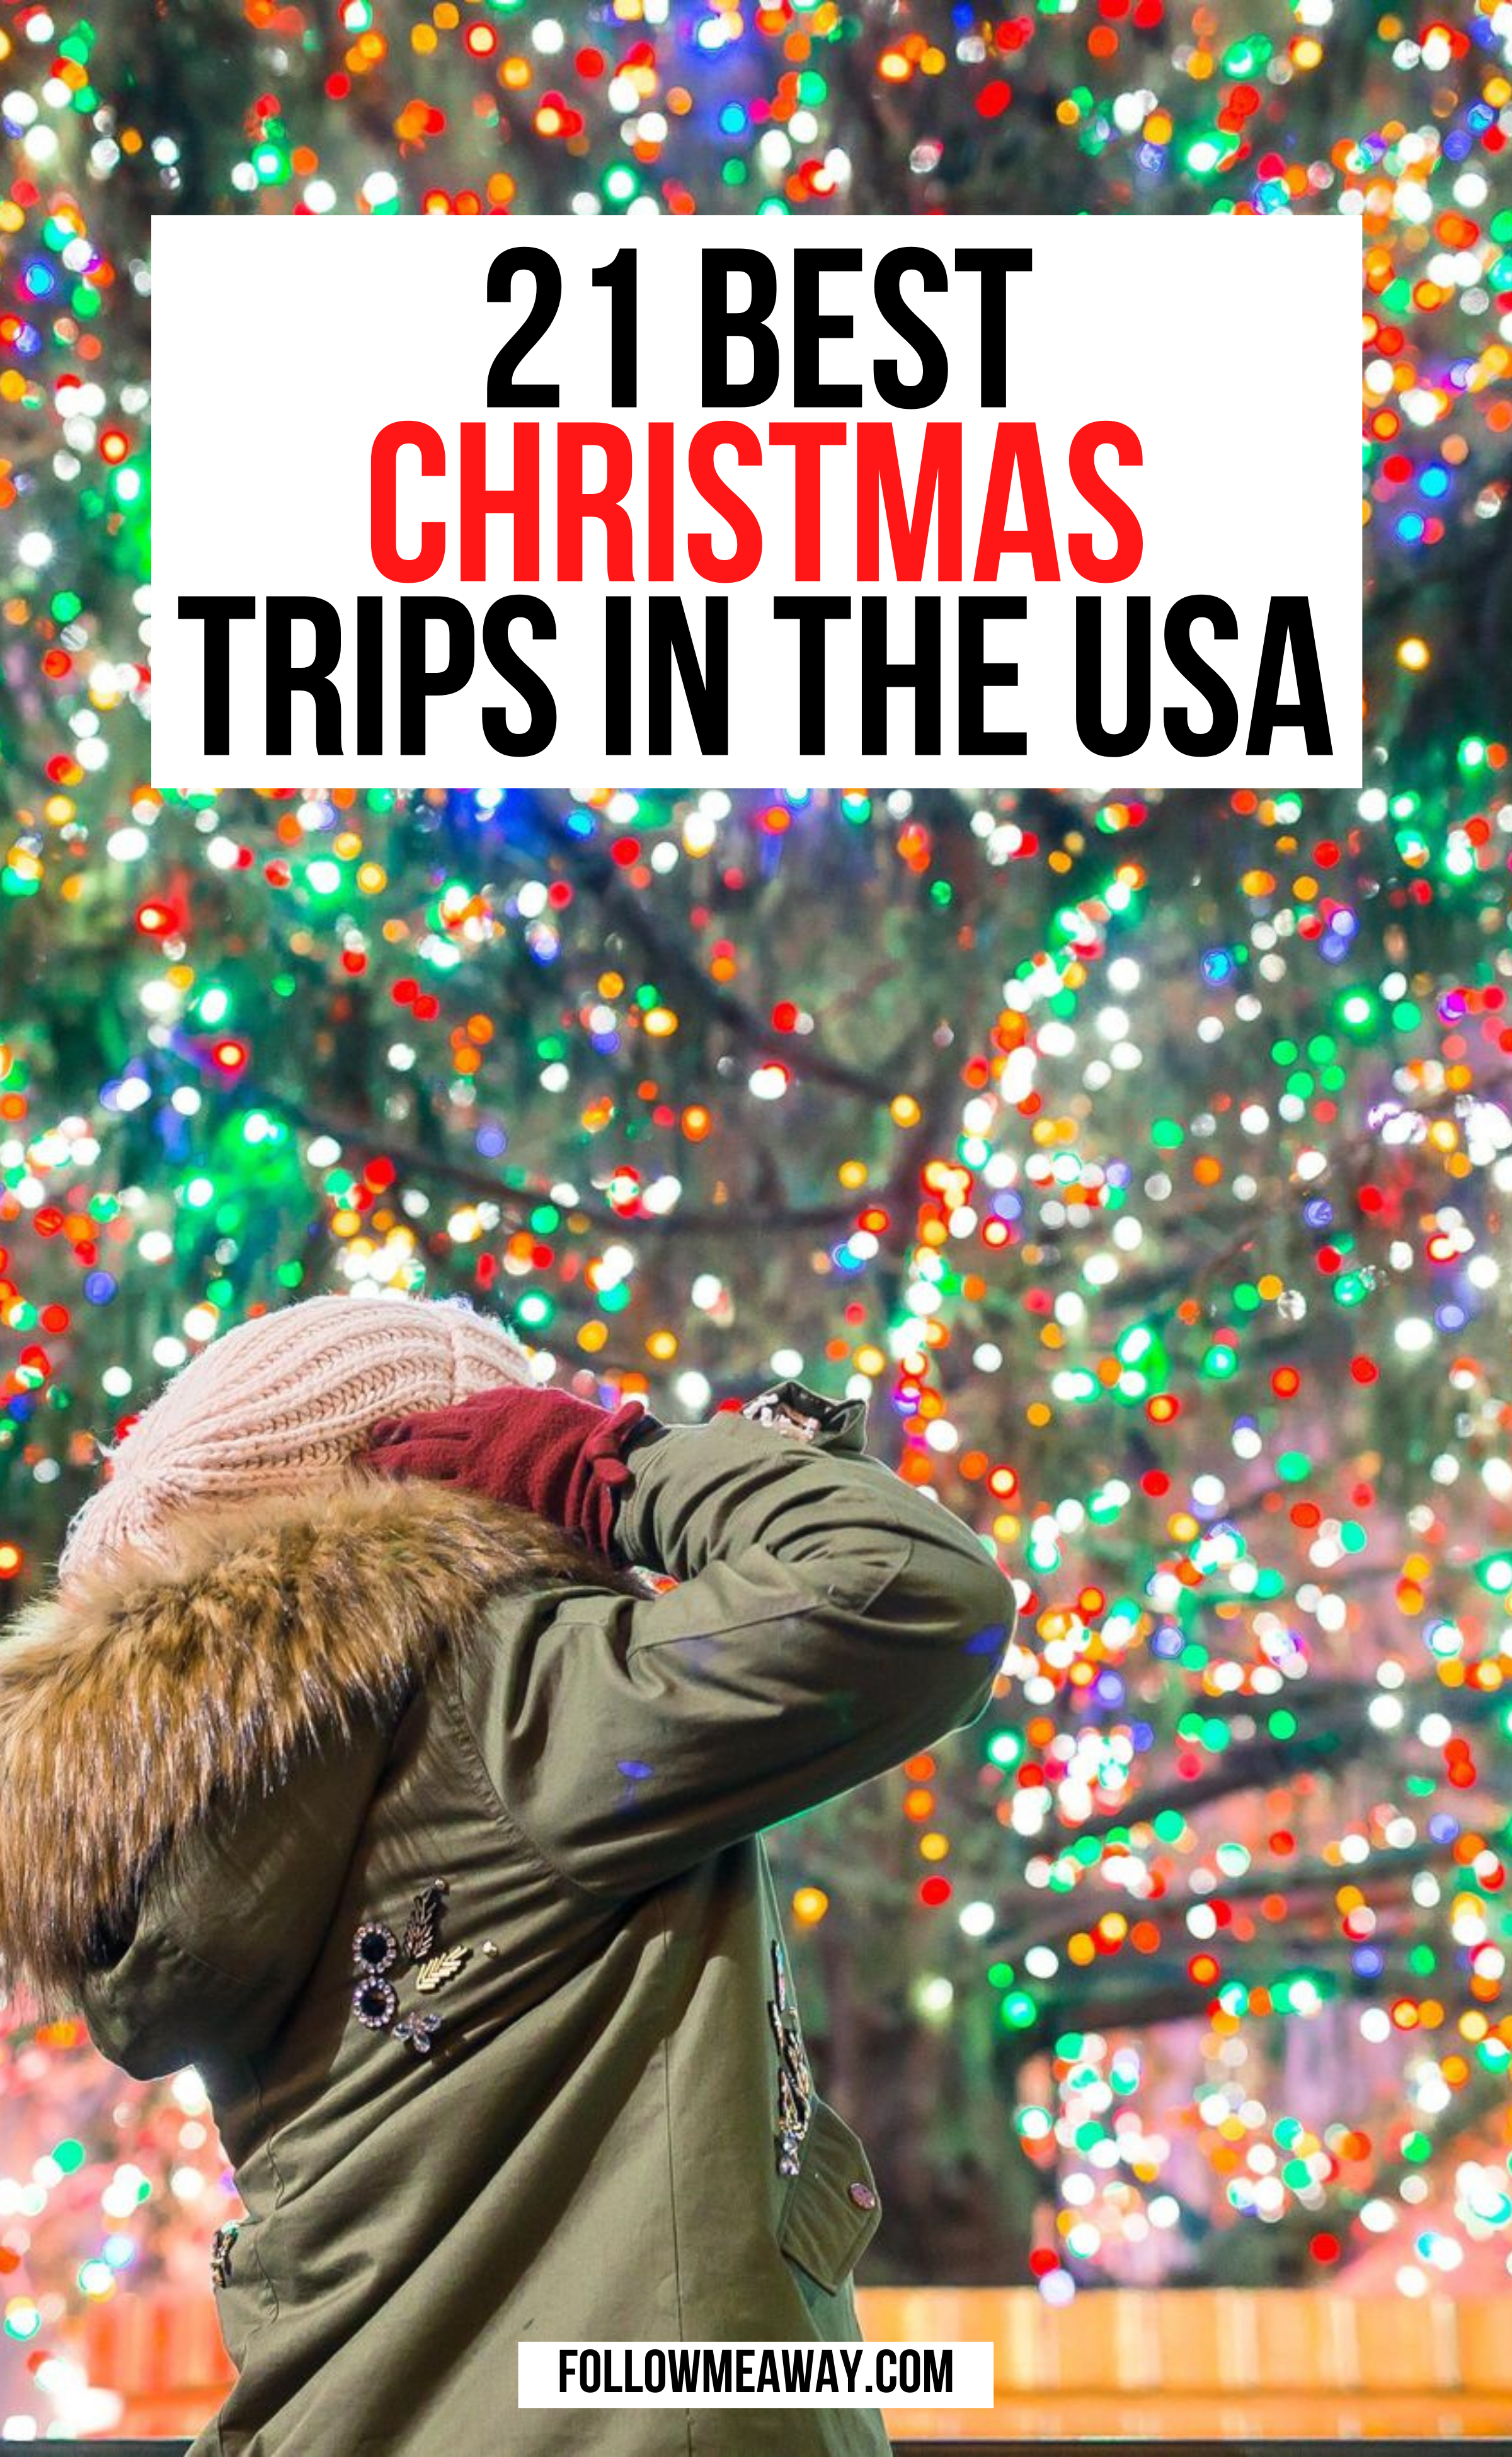 21 Festive Vacation Destinations For Christmas In The Usa Follow Me Away In 2020 Christmas Travel Winter Travel Destinations Vacation Trips